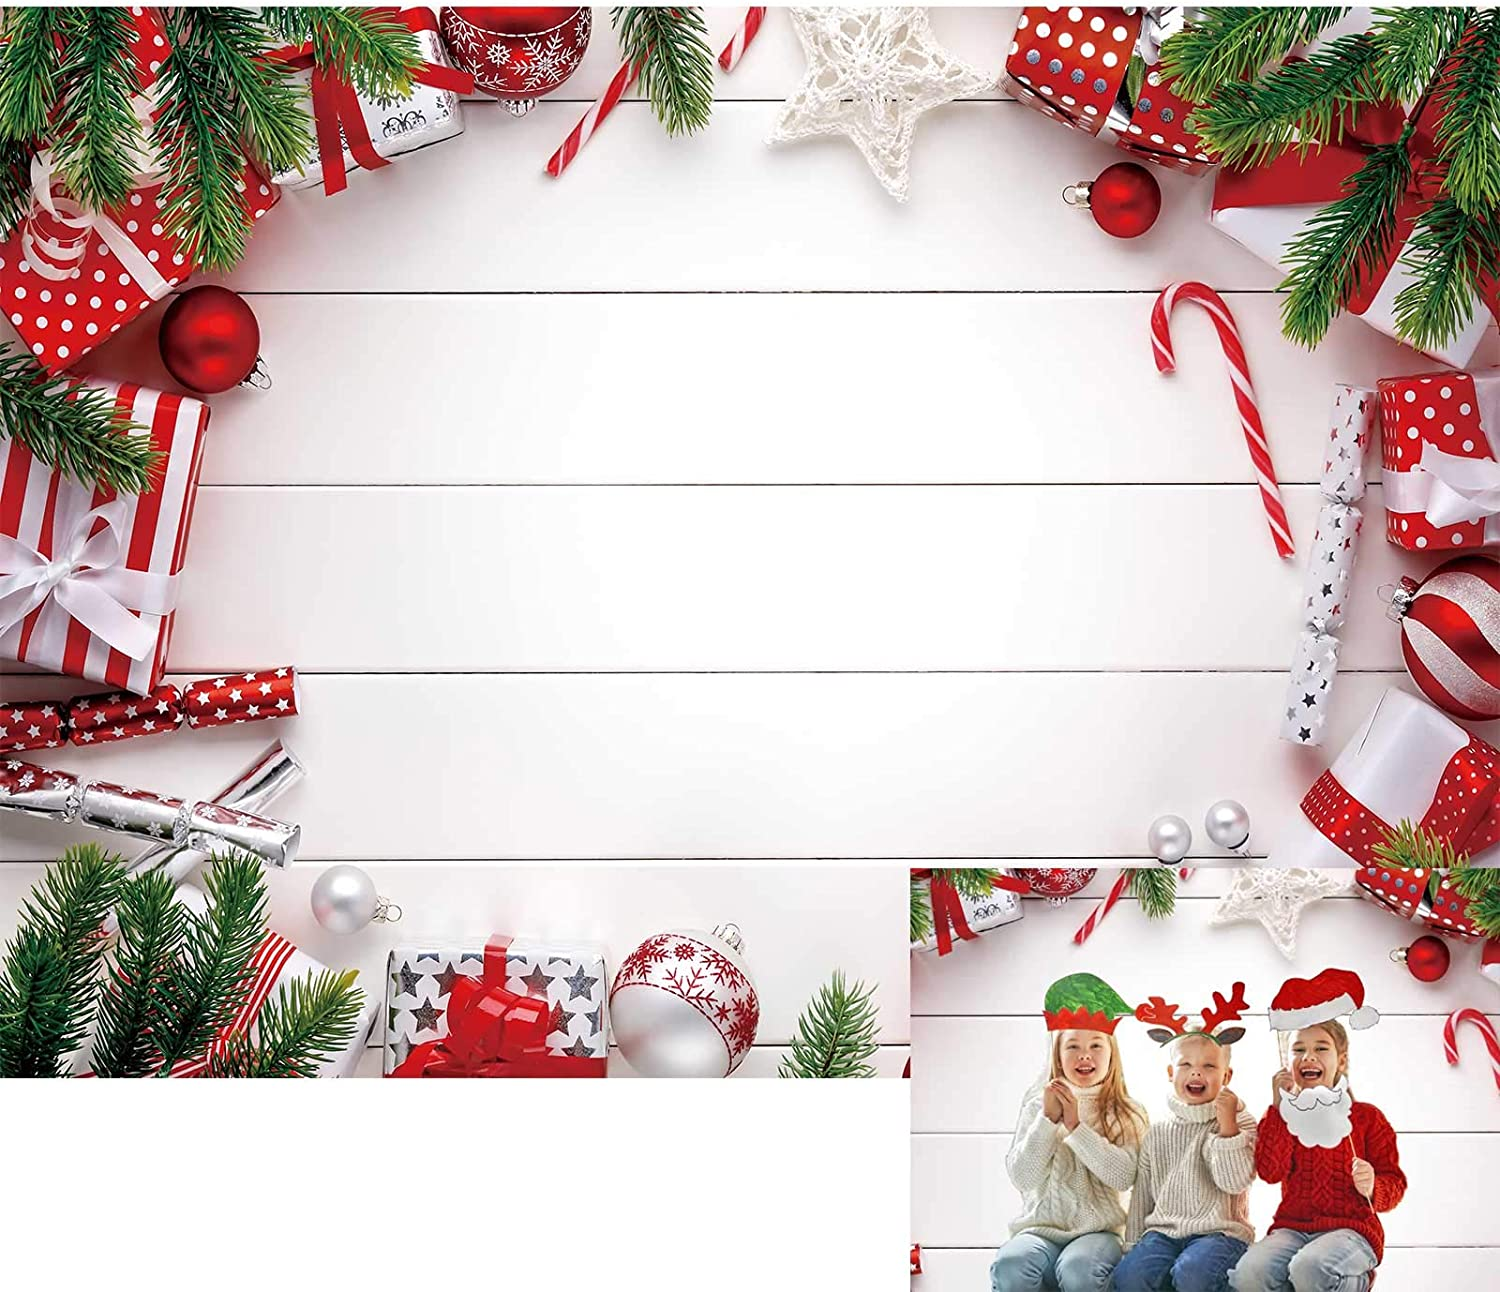 Allenjoy 7x5ft White Wooden Christmas Backdrop Green Pines Xmas Decorations Photography Background for Kids Children Baby Shower Birthday Party Decor Banner Portrait Photo Booth Props